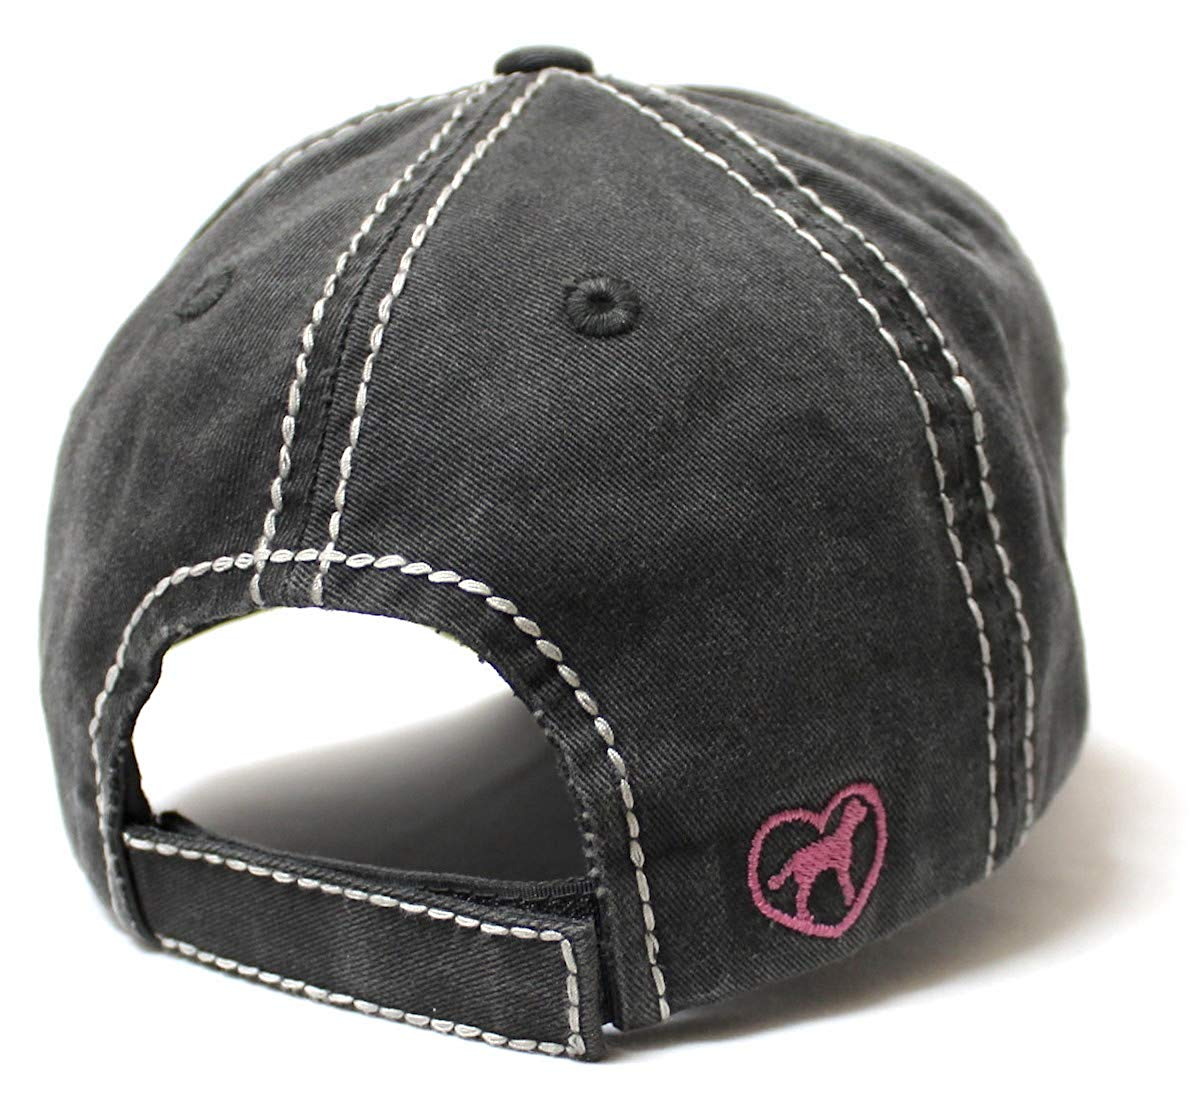 Women's Love Pink Cap Dog MOM Heart Patch Embroidery, Blk - Caps 'N Vintage